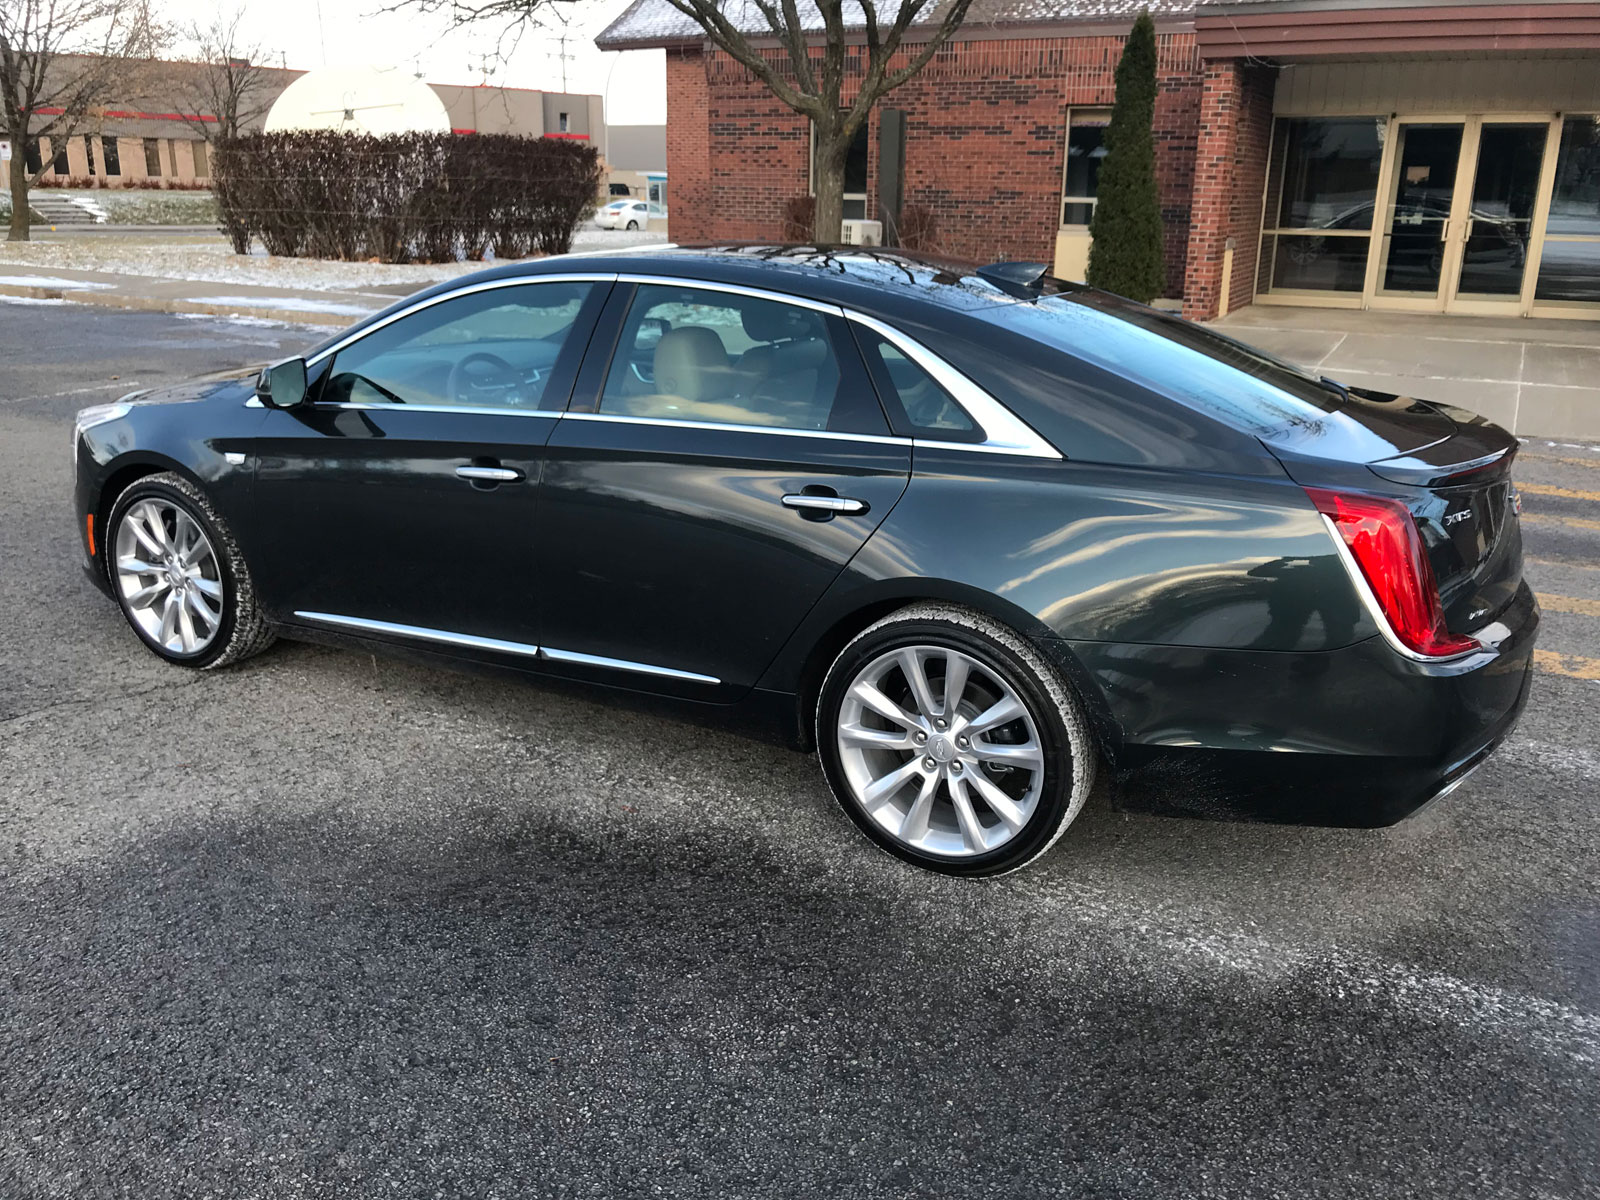 2018 Cadillac Xts V Sport Review Show Me The Buttons